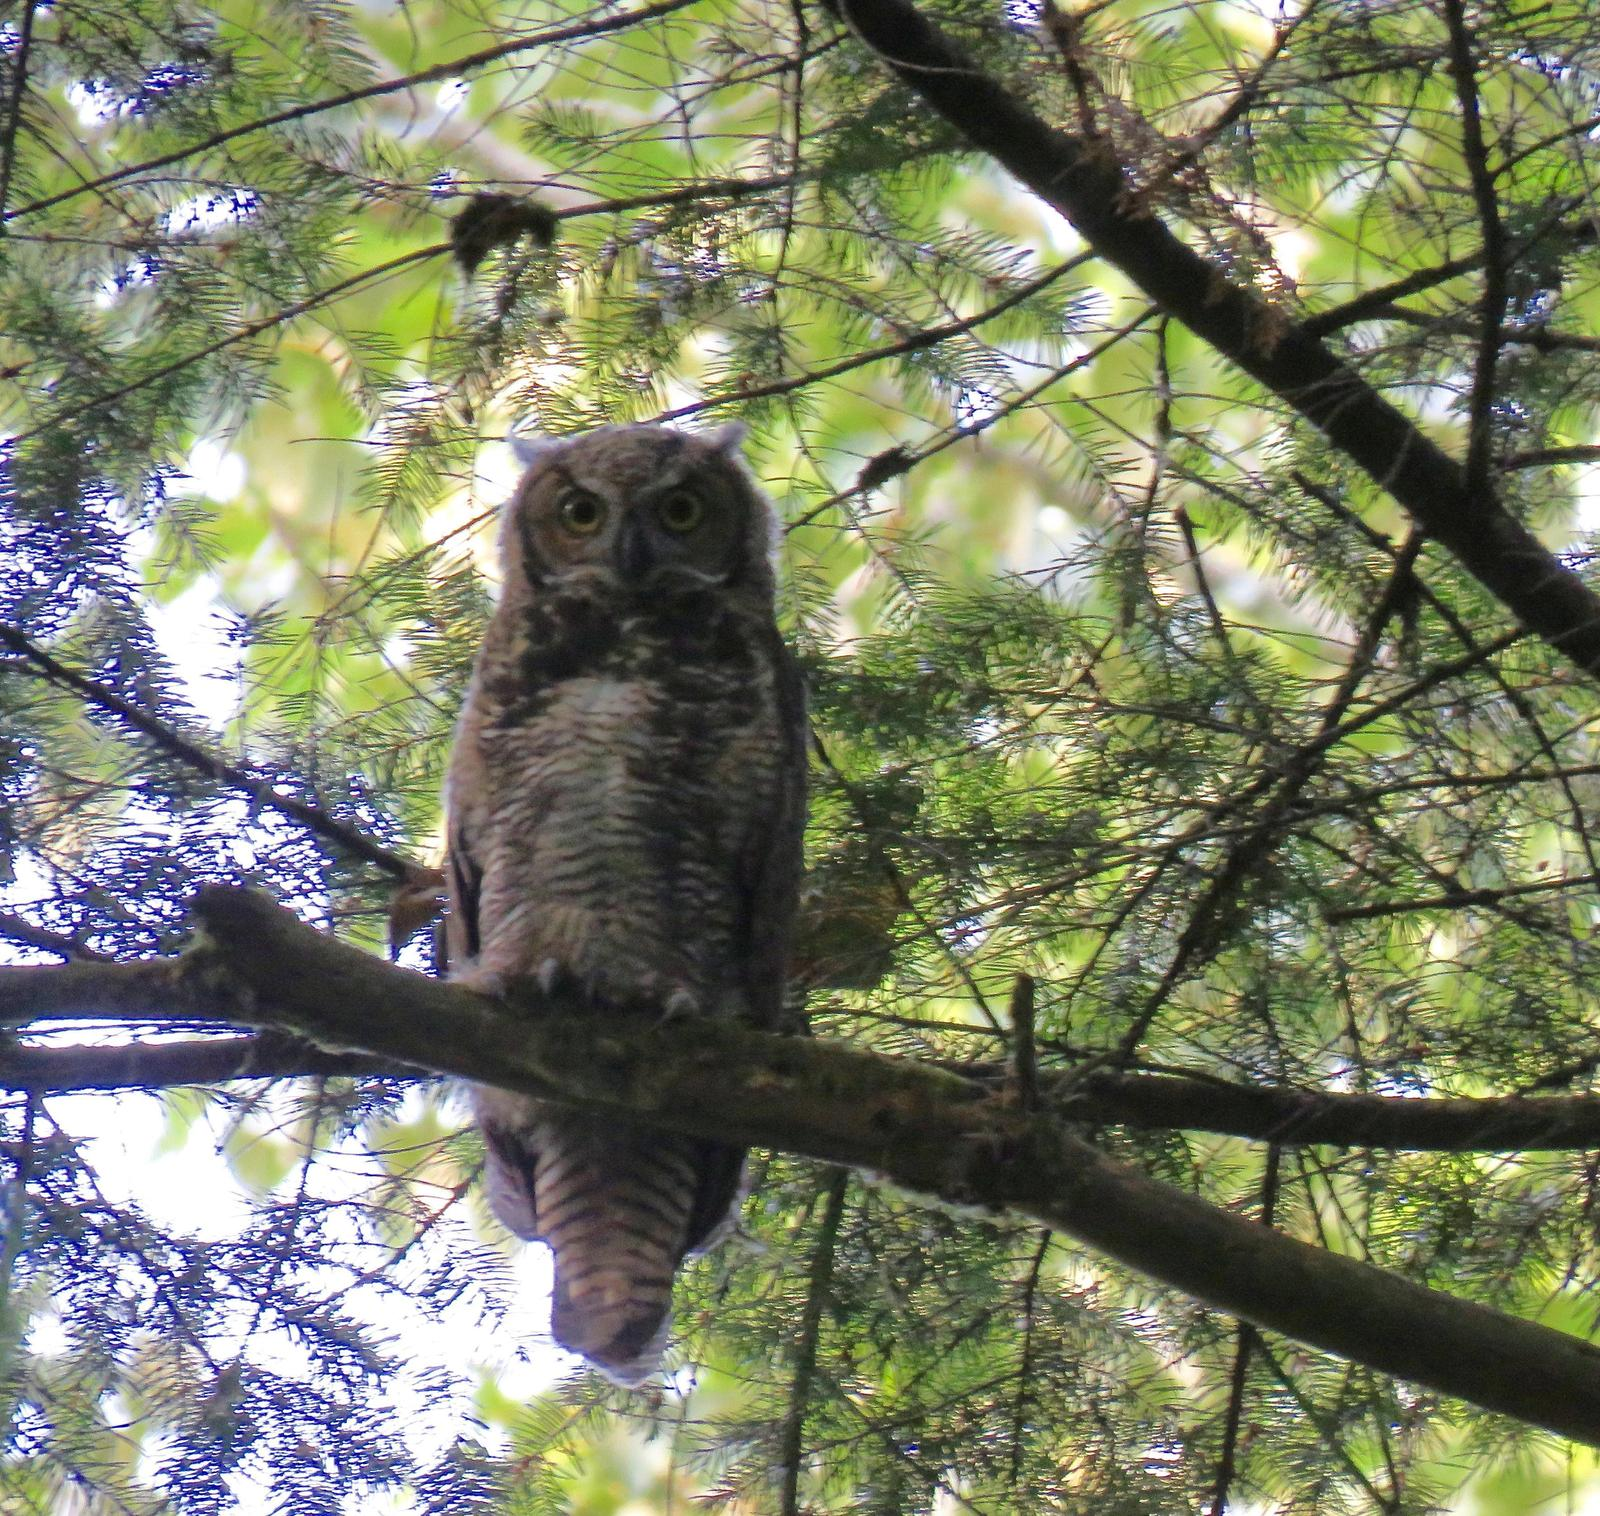 Great Horned Owl (Great Horned) Photo by Ted Goshulak